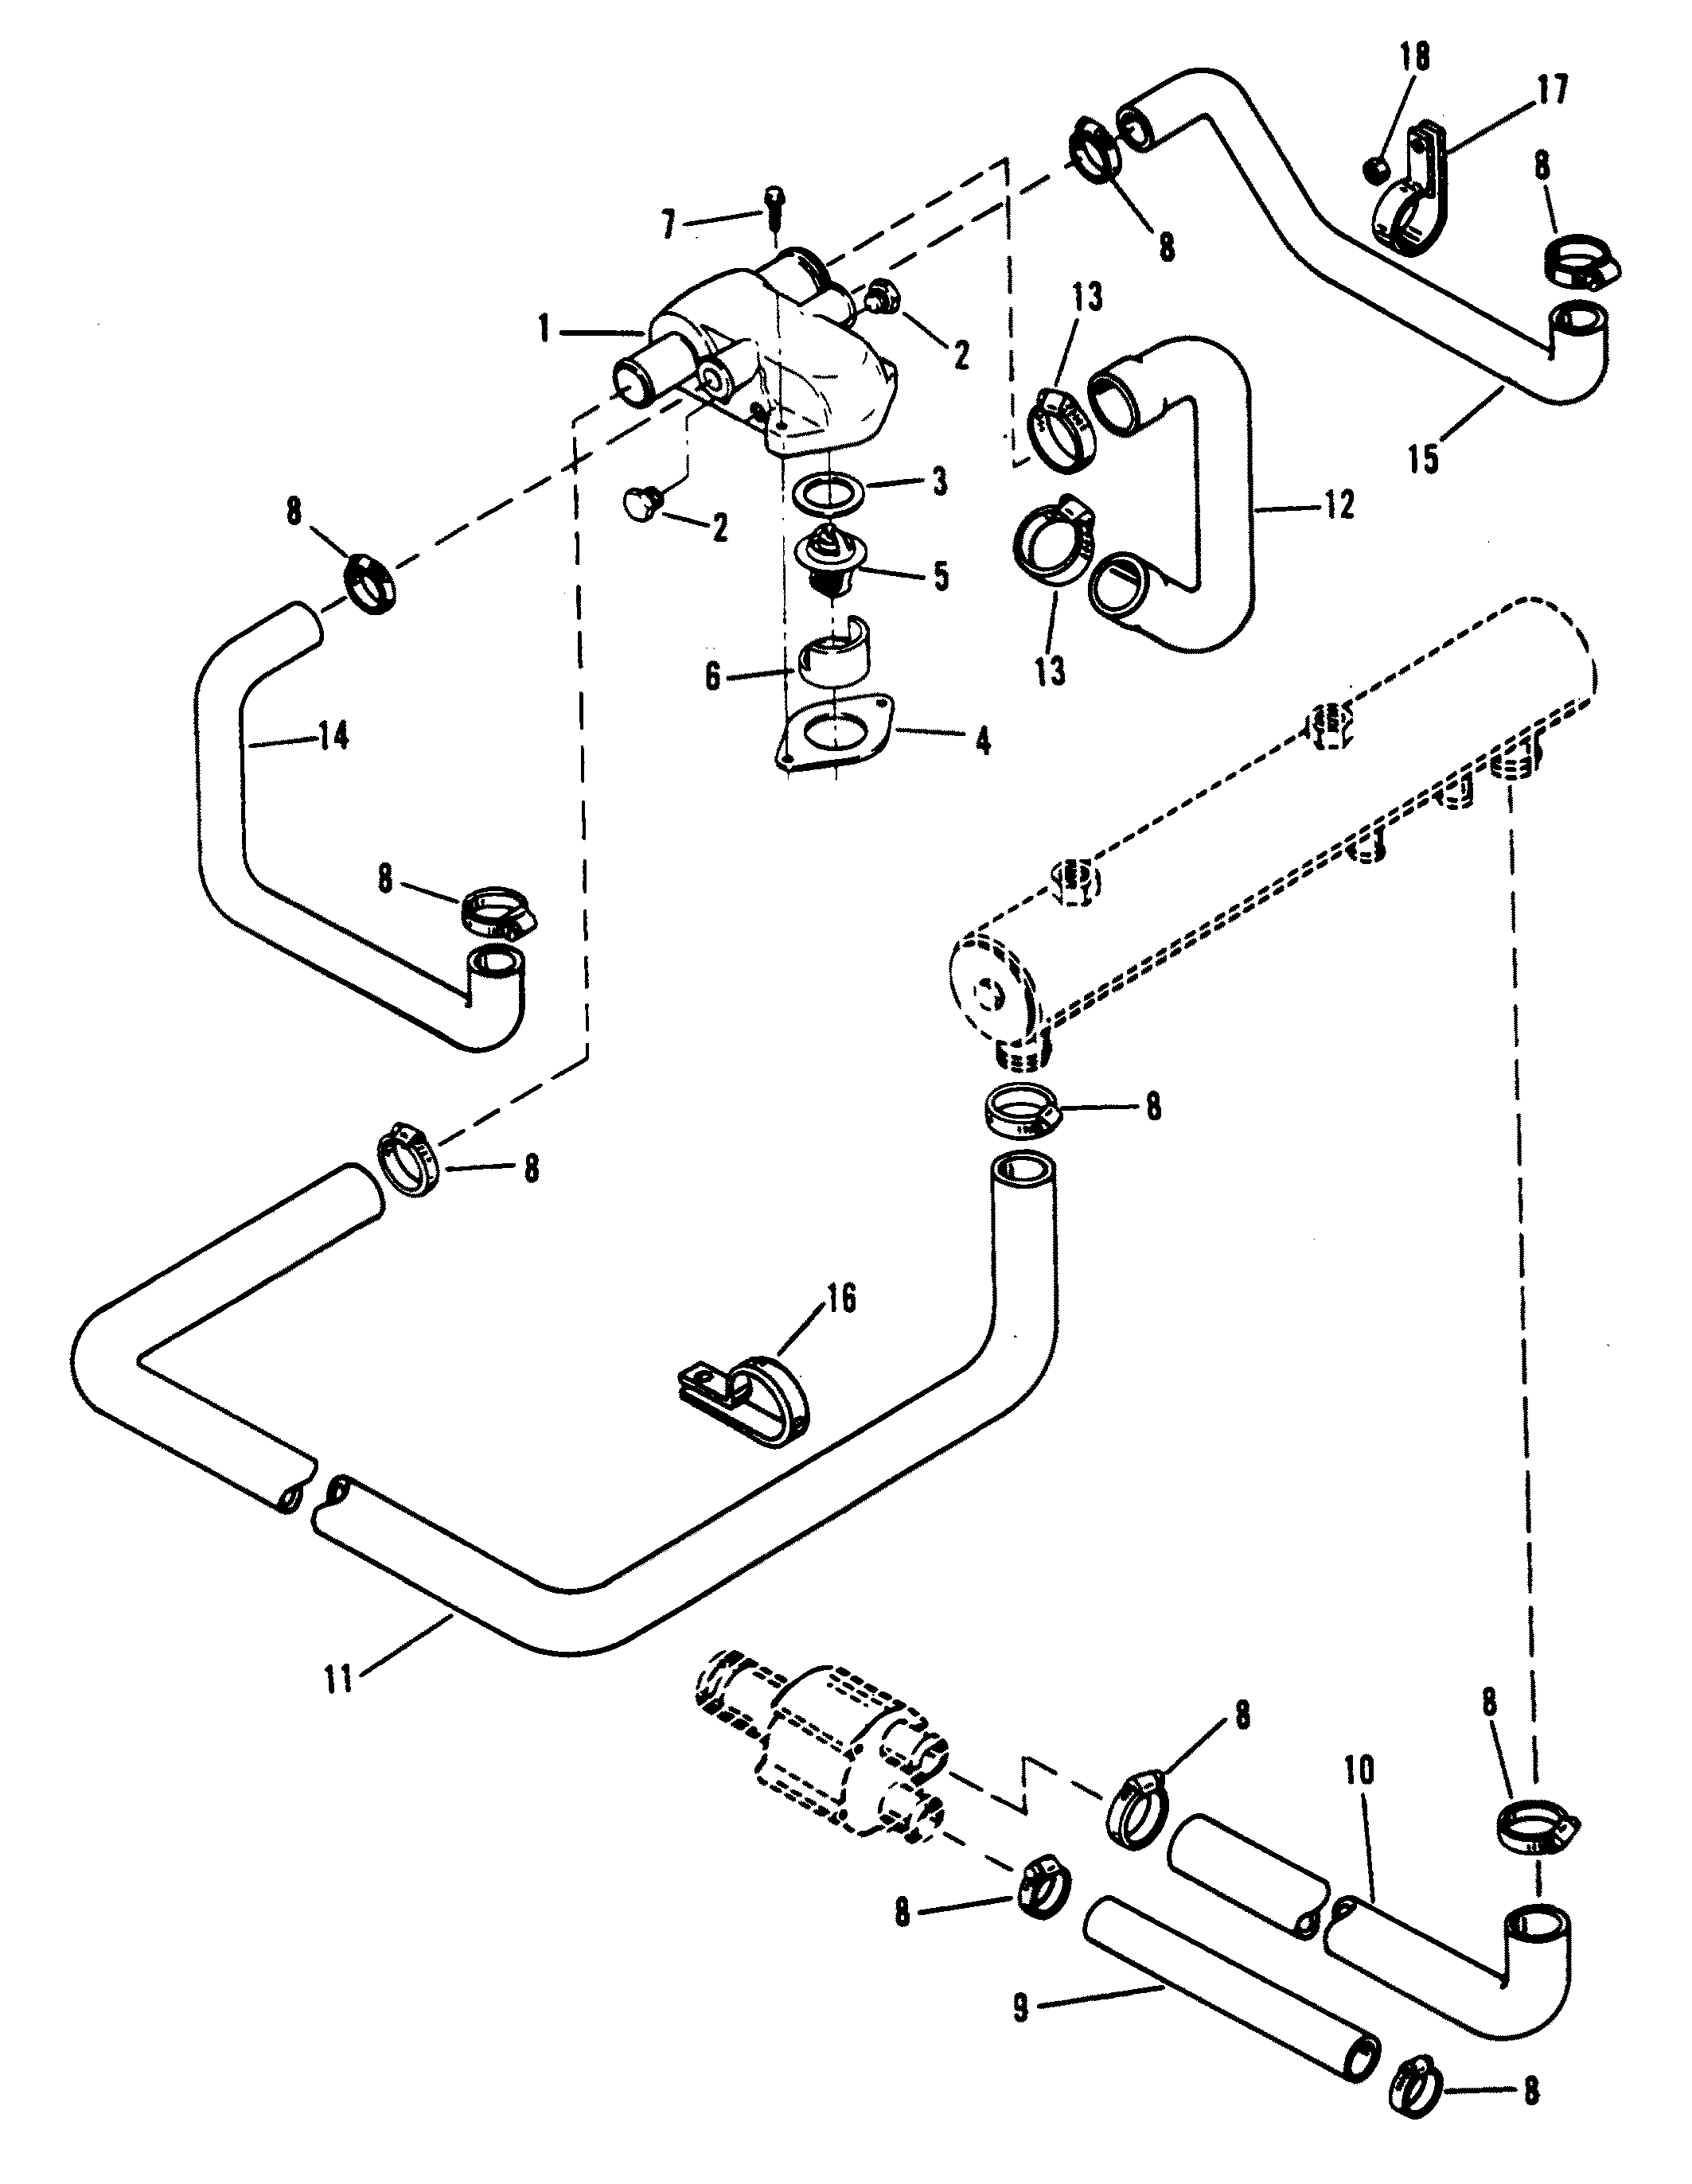 1998 chevy prizm engine diagram